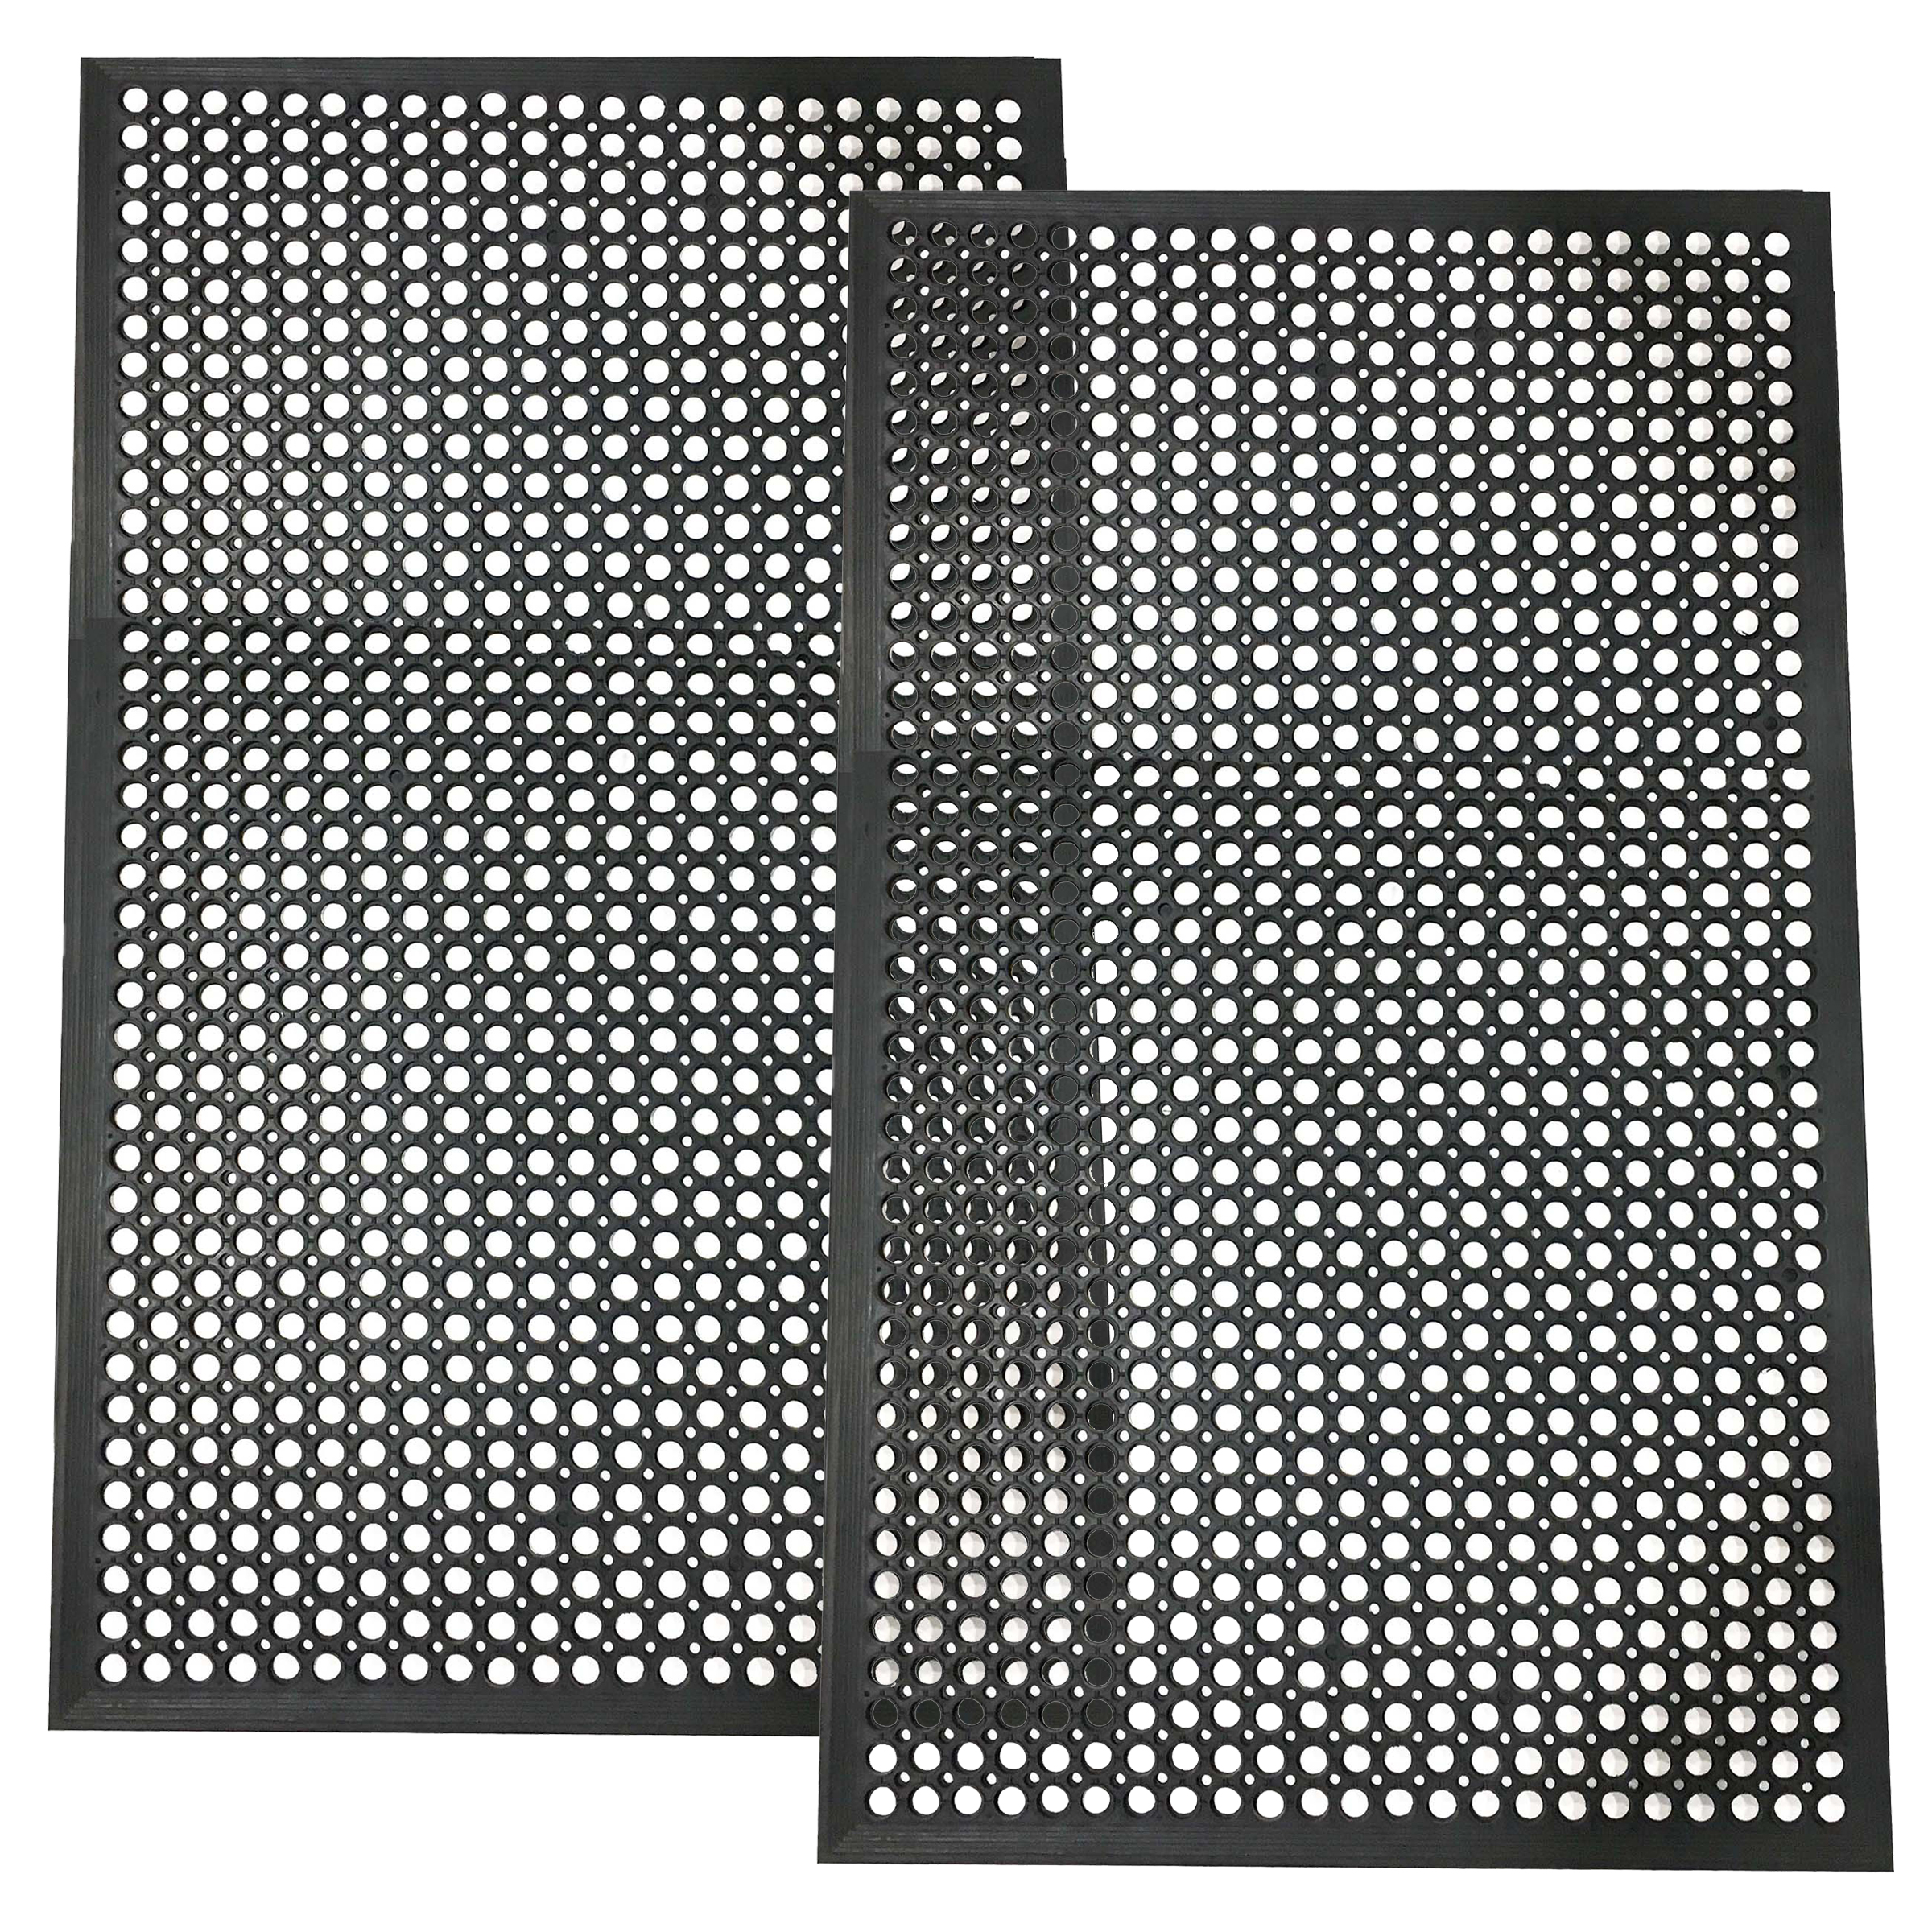 Buffalo Tools 3 x 5 Foot Industrial Rubber Floor Mat - 2Pk